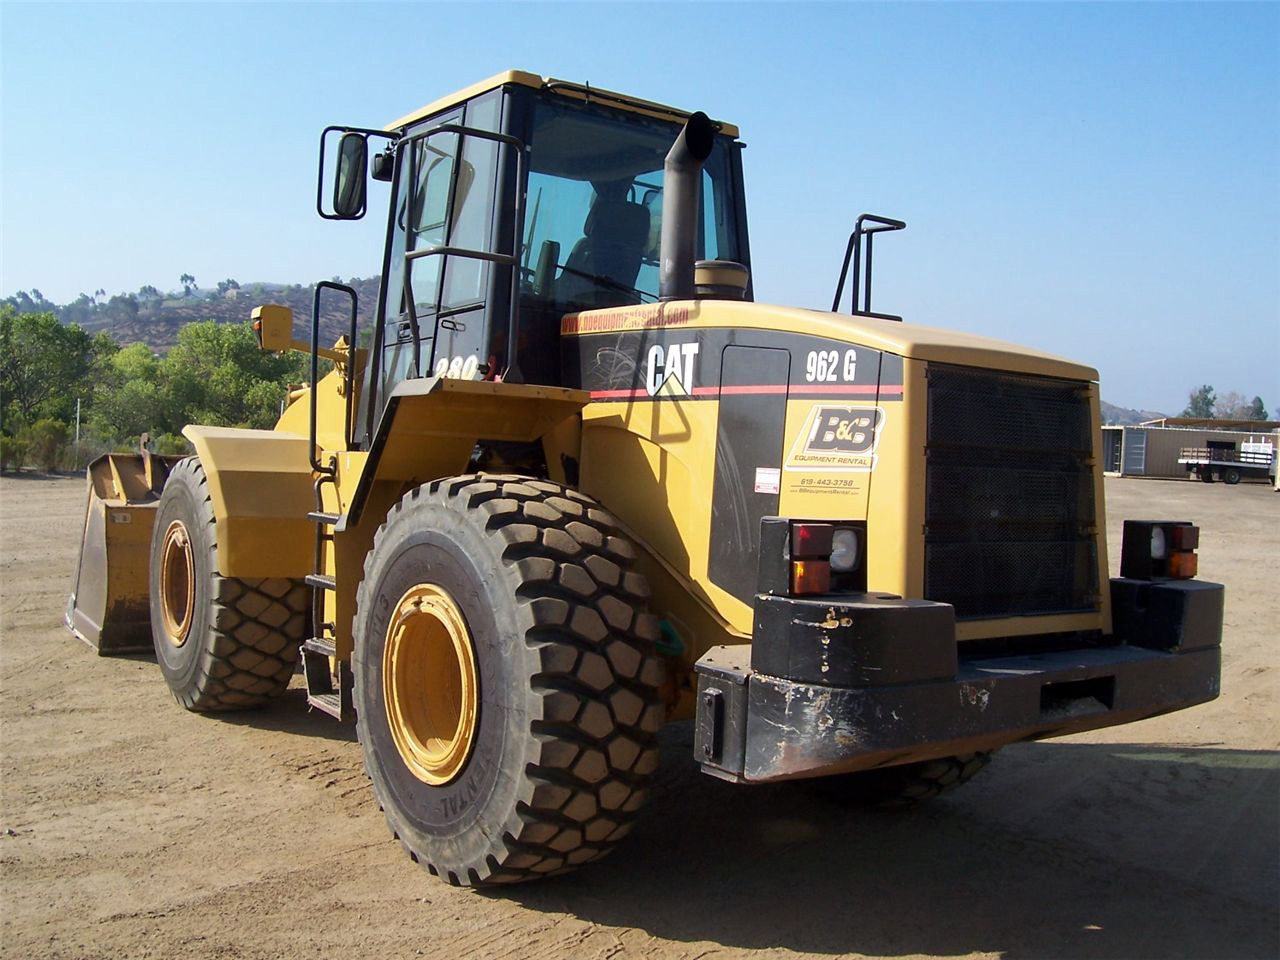 Caterpillar 962 photo 54126